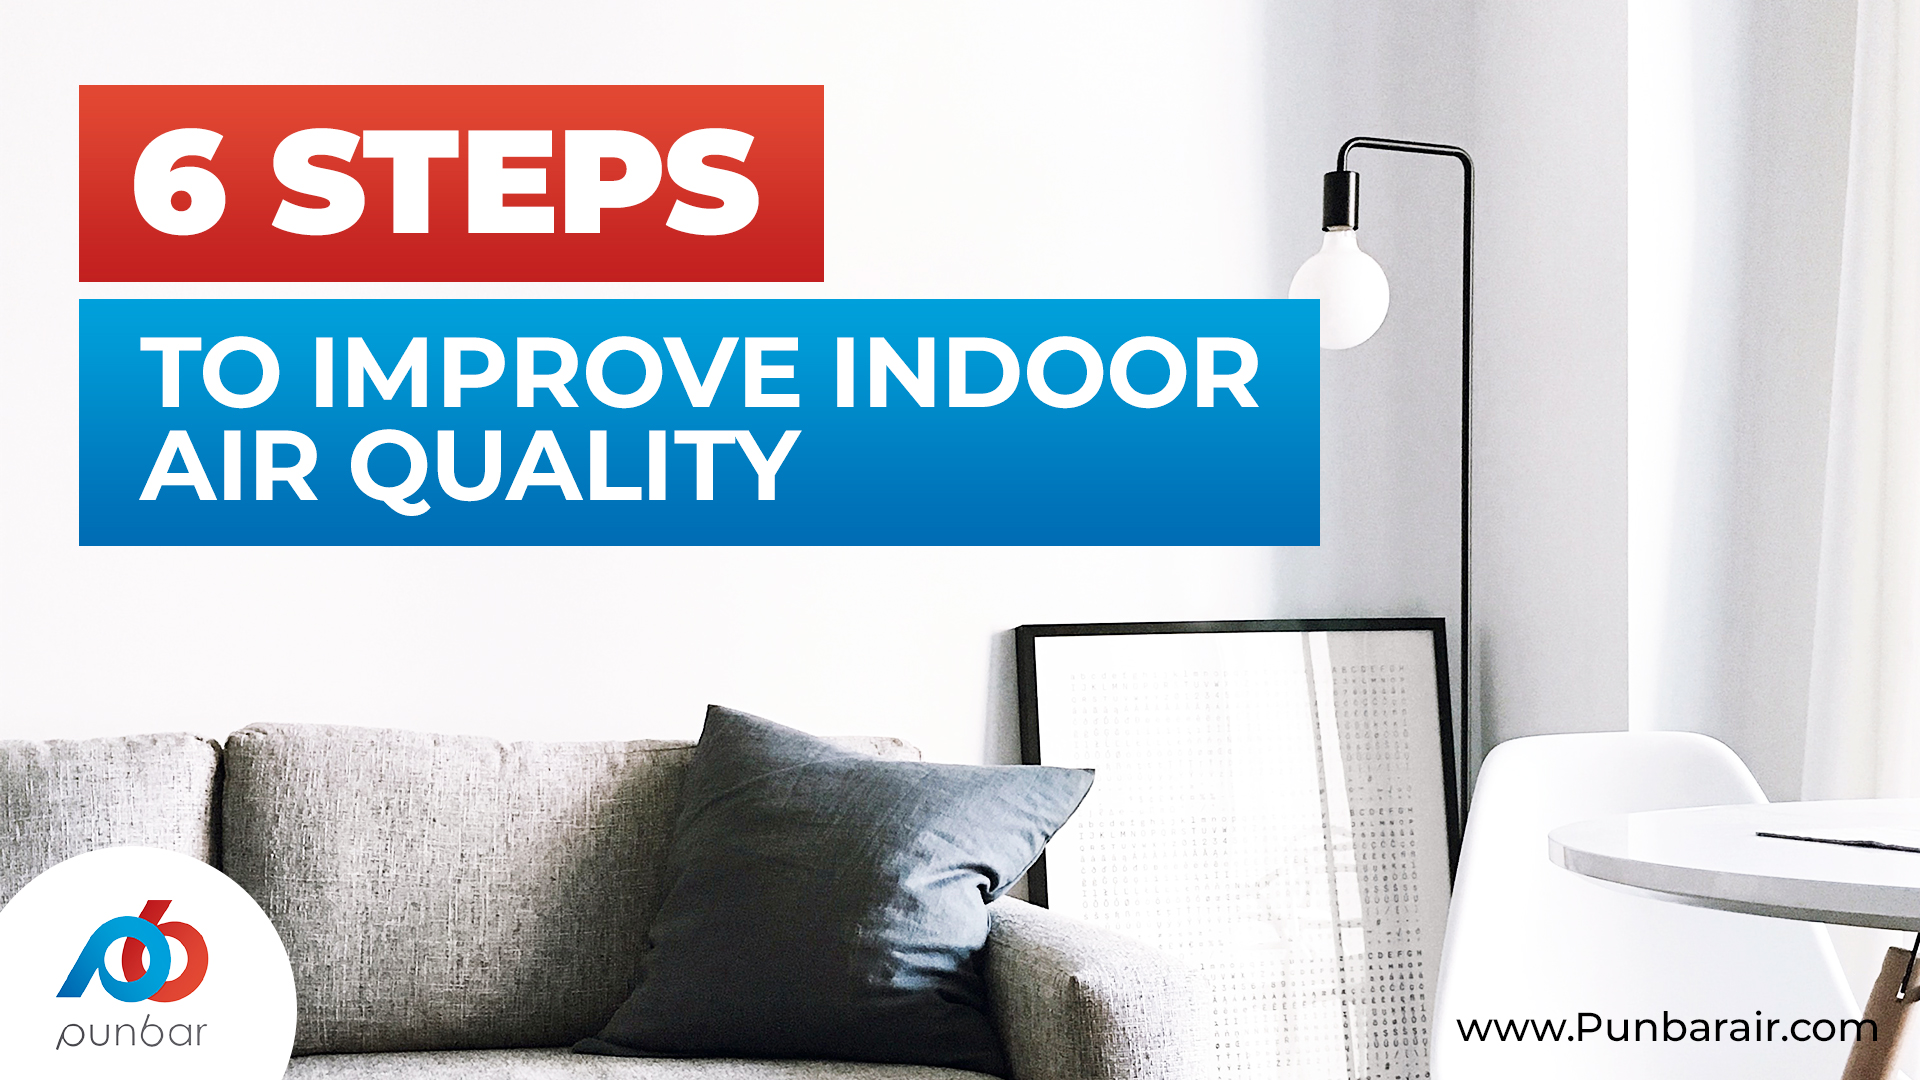 6 STEPS TO IMPROVE INDOOR AIR QUALITY IN YOUR HOME